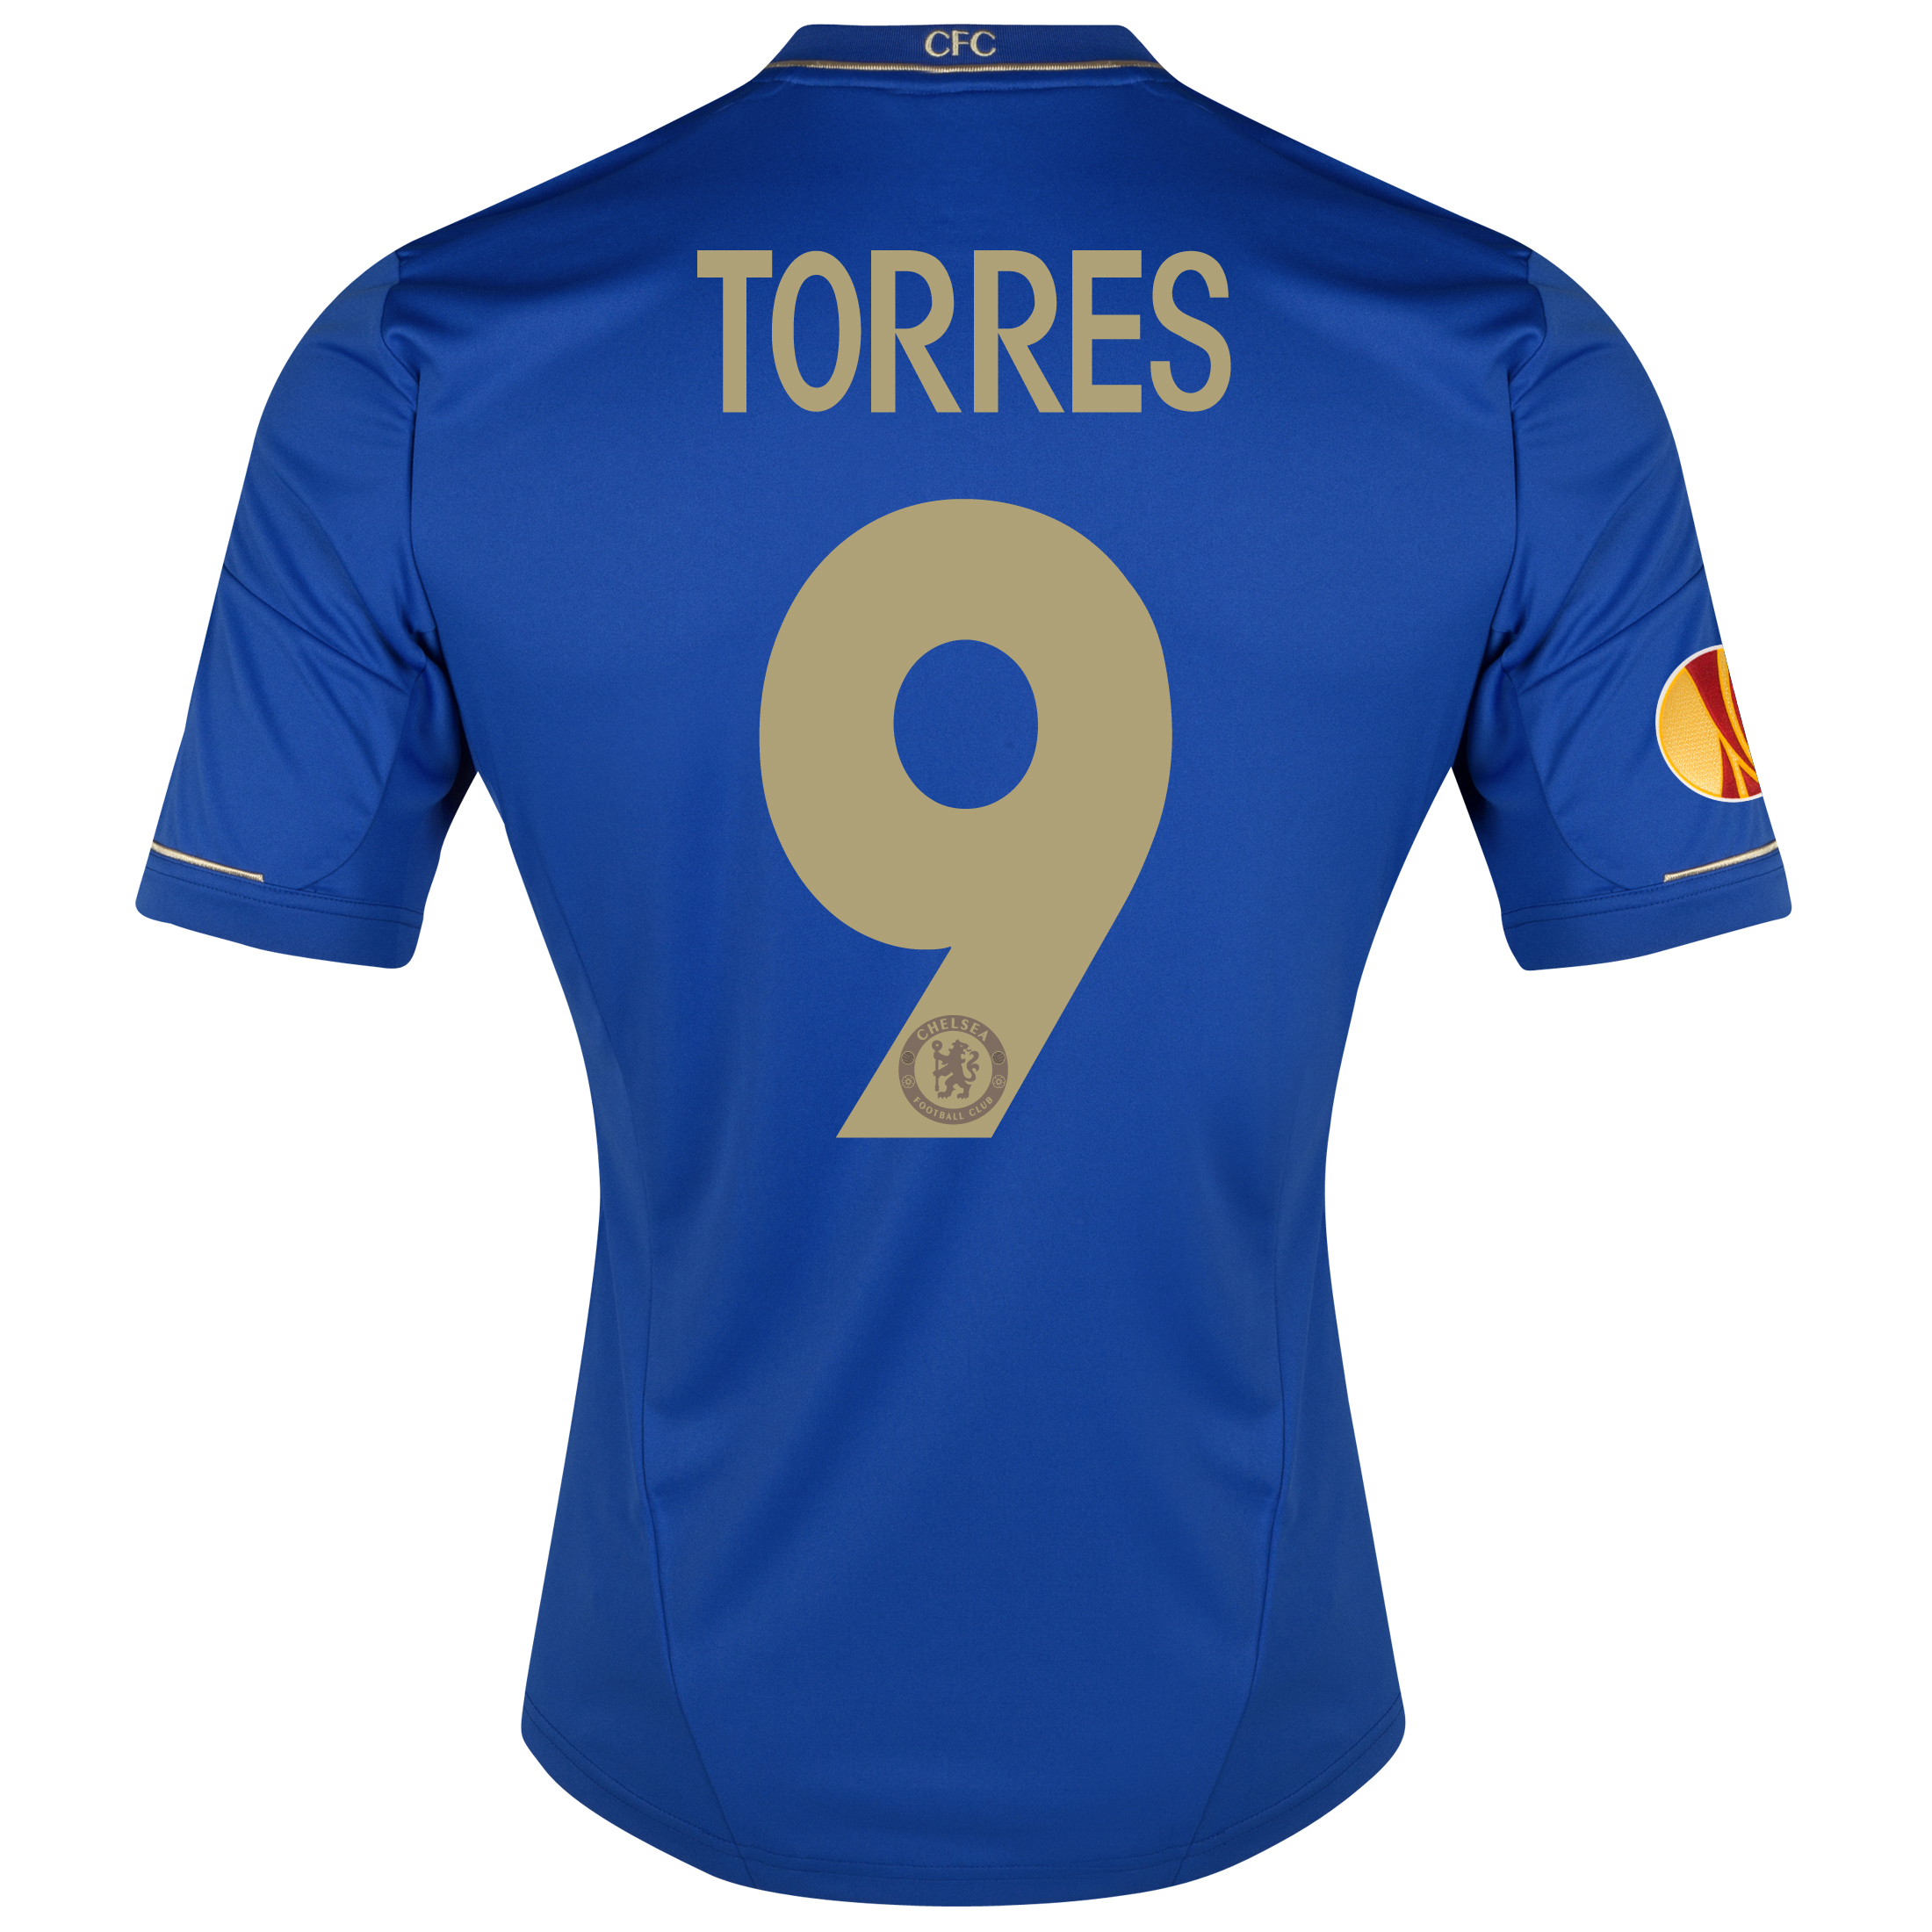 Chelsea UEFA Europa League Home Shirt 2012/13 with Torres 9 printing Including Europa Badge